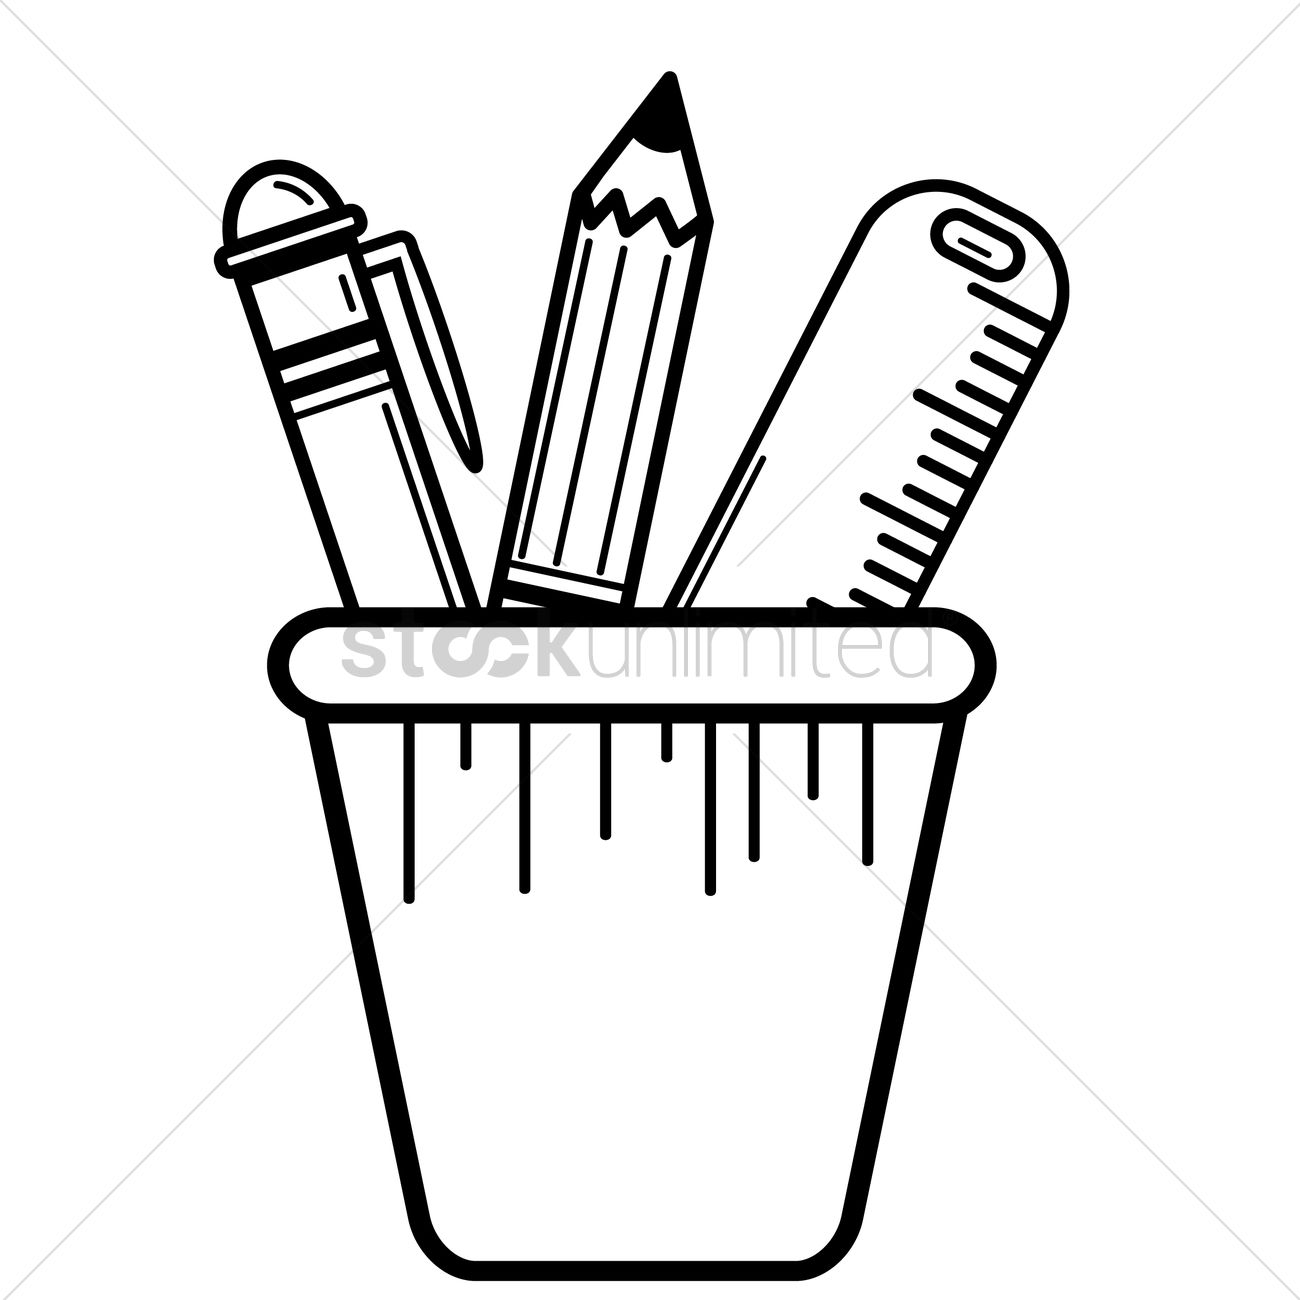 Free Pen Pencil And Ruler In Pen Holder Vector Image